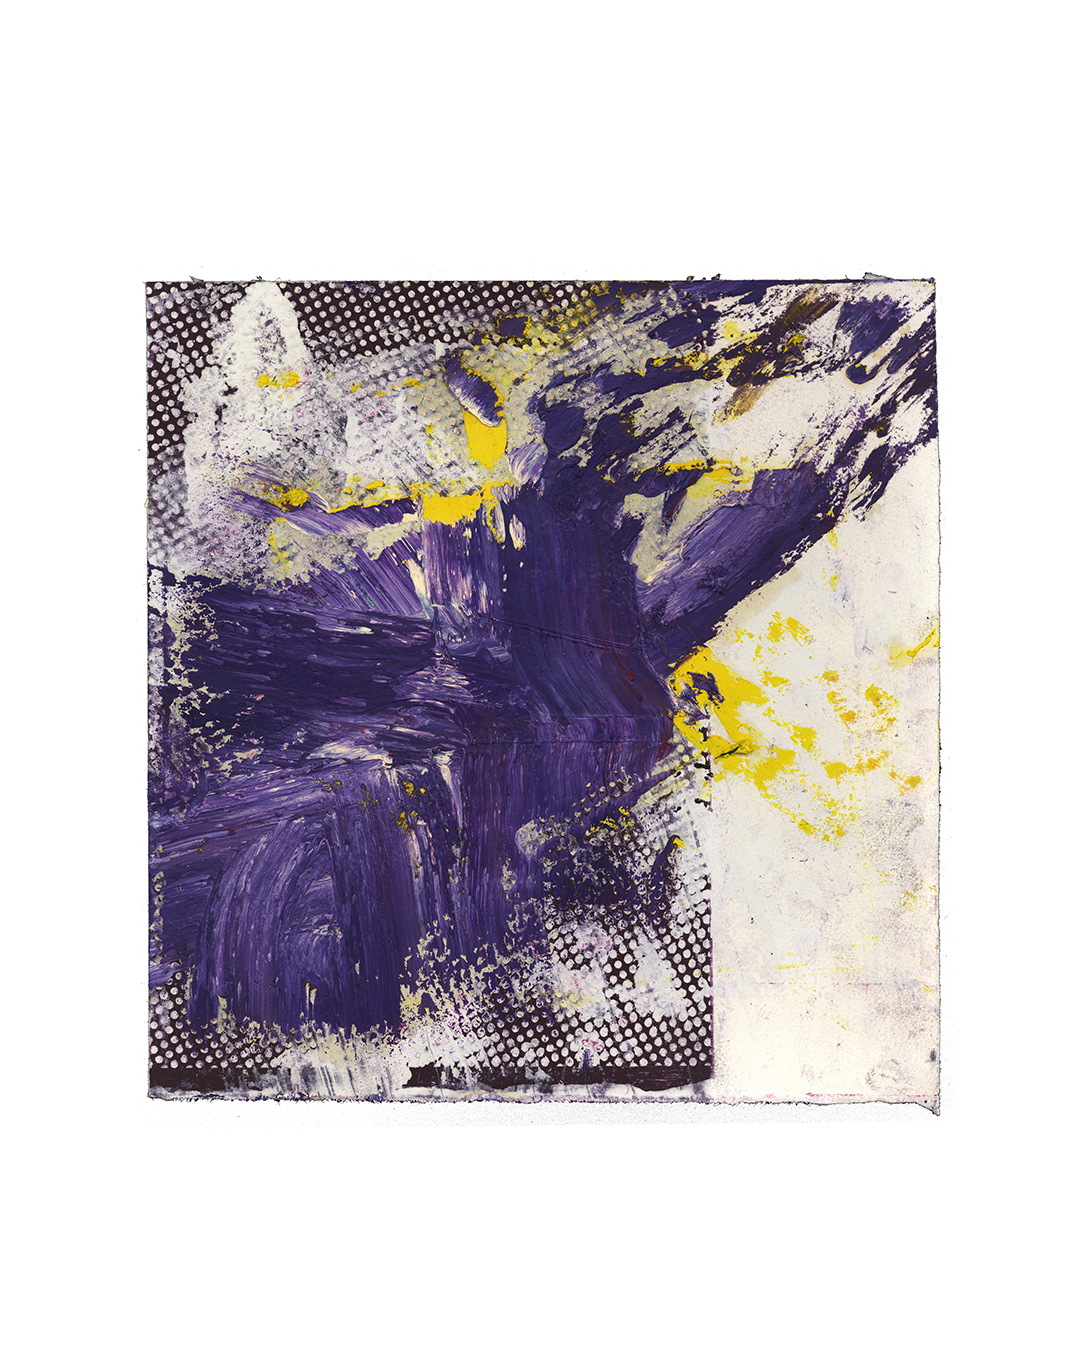 Piet Dieleman, untitled, 2020, painting, oil paint, tempera, acrylic paint, laser woodprint on paper, 290 x 280 mm, €930